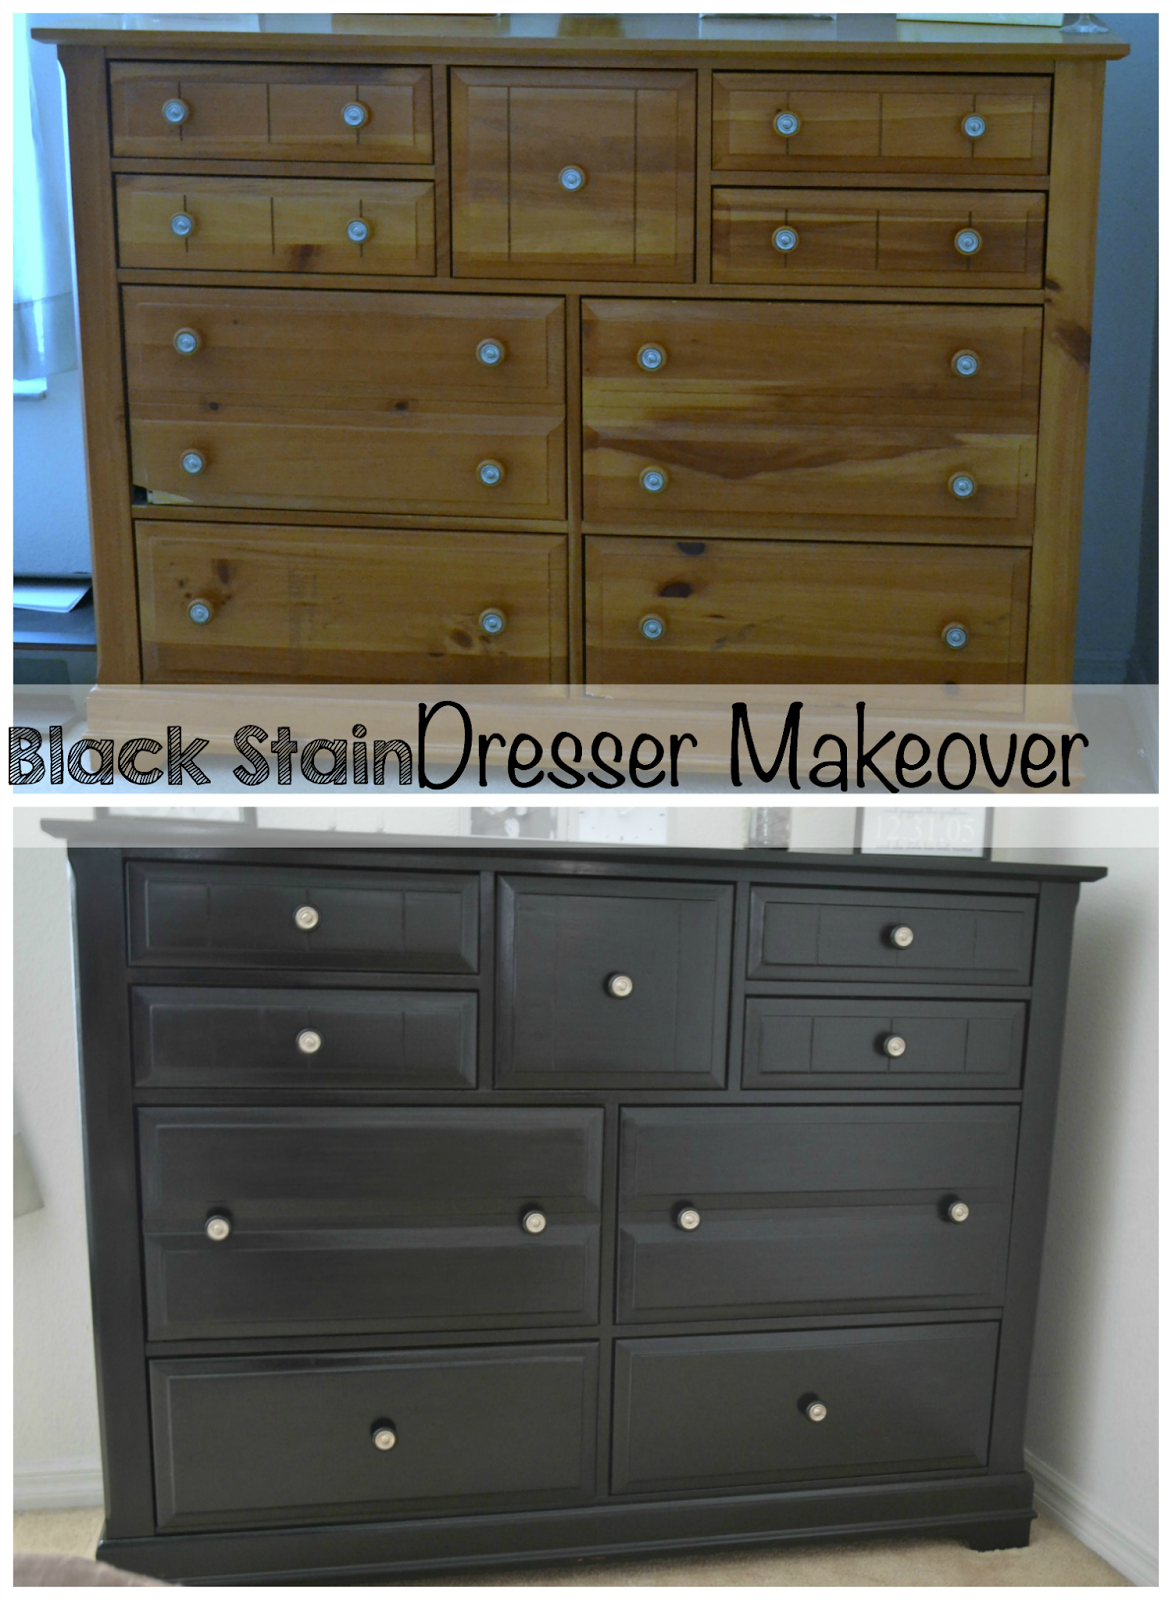 World Bedroom Furniture: It's A Mom's World: Bedroom Furniture Makeover Part 2